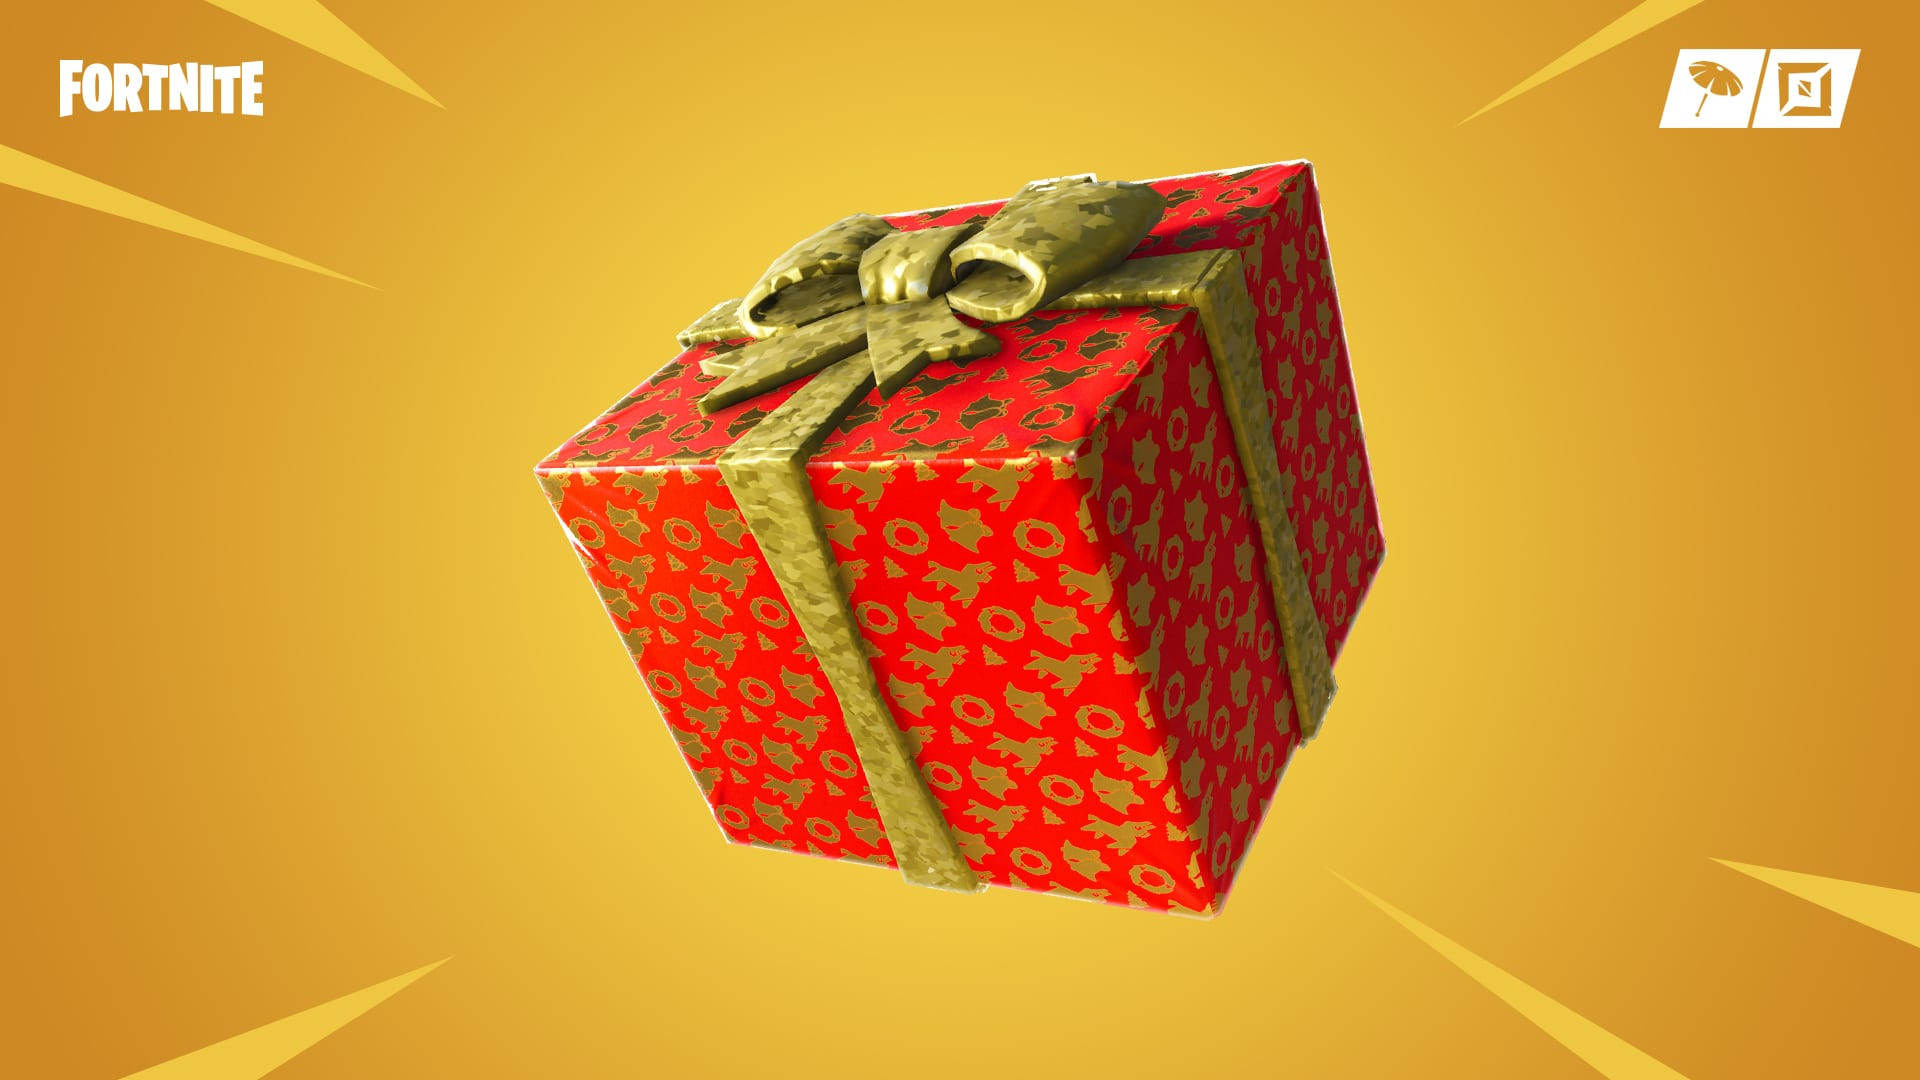 Fortnite Presents Winterfest Challenge: How To Use Presents in Fortnite |  Fortnite Insider